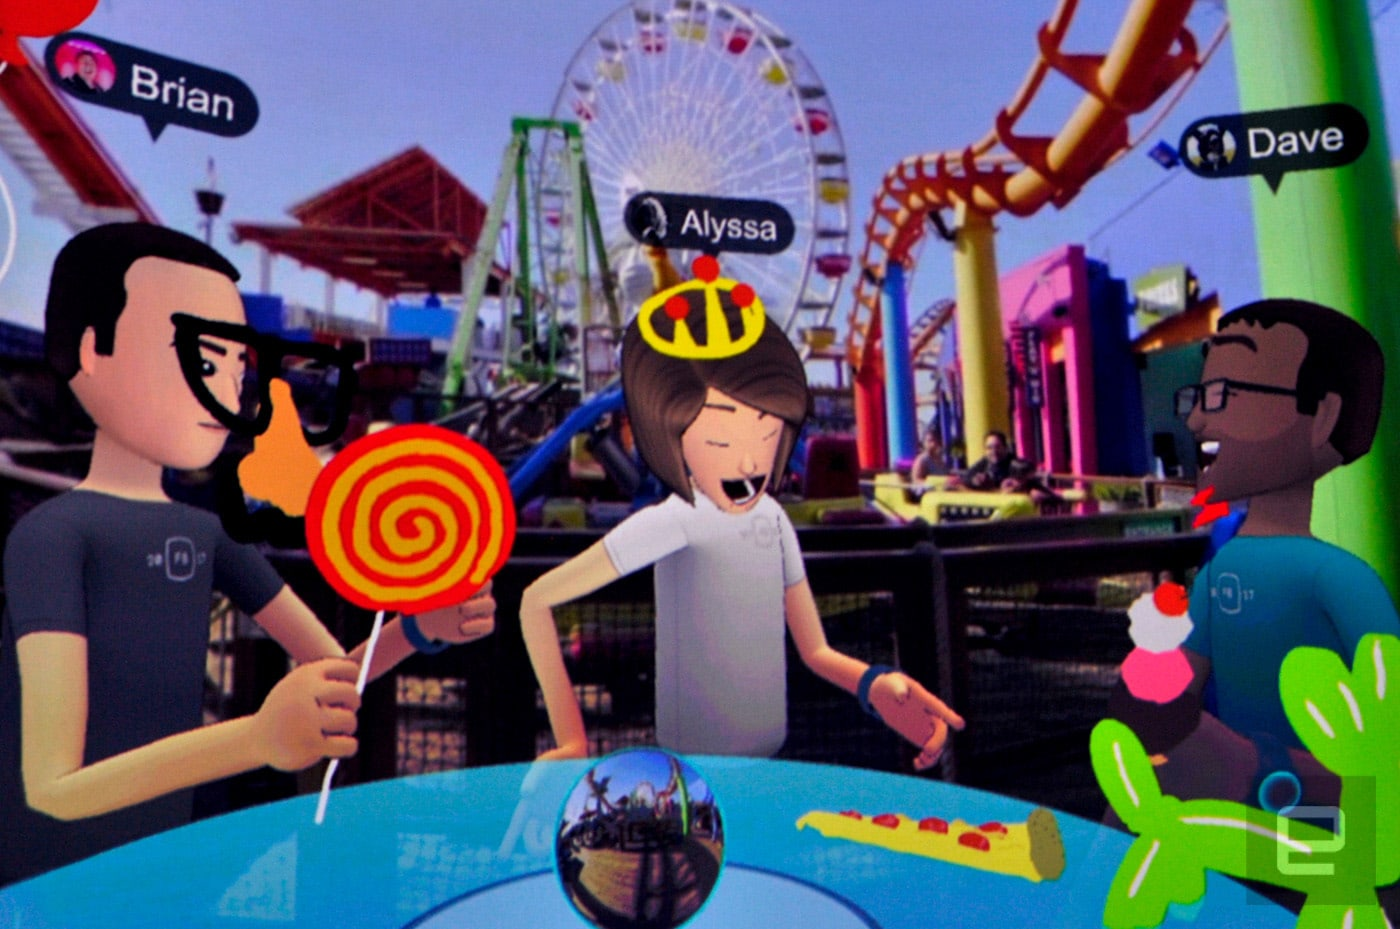 How to use Facebooks new VR social network